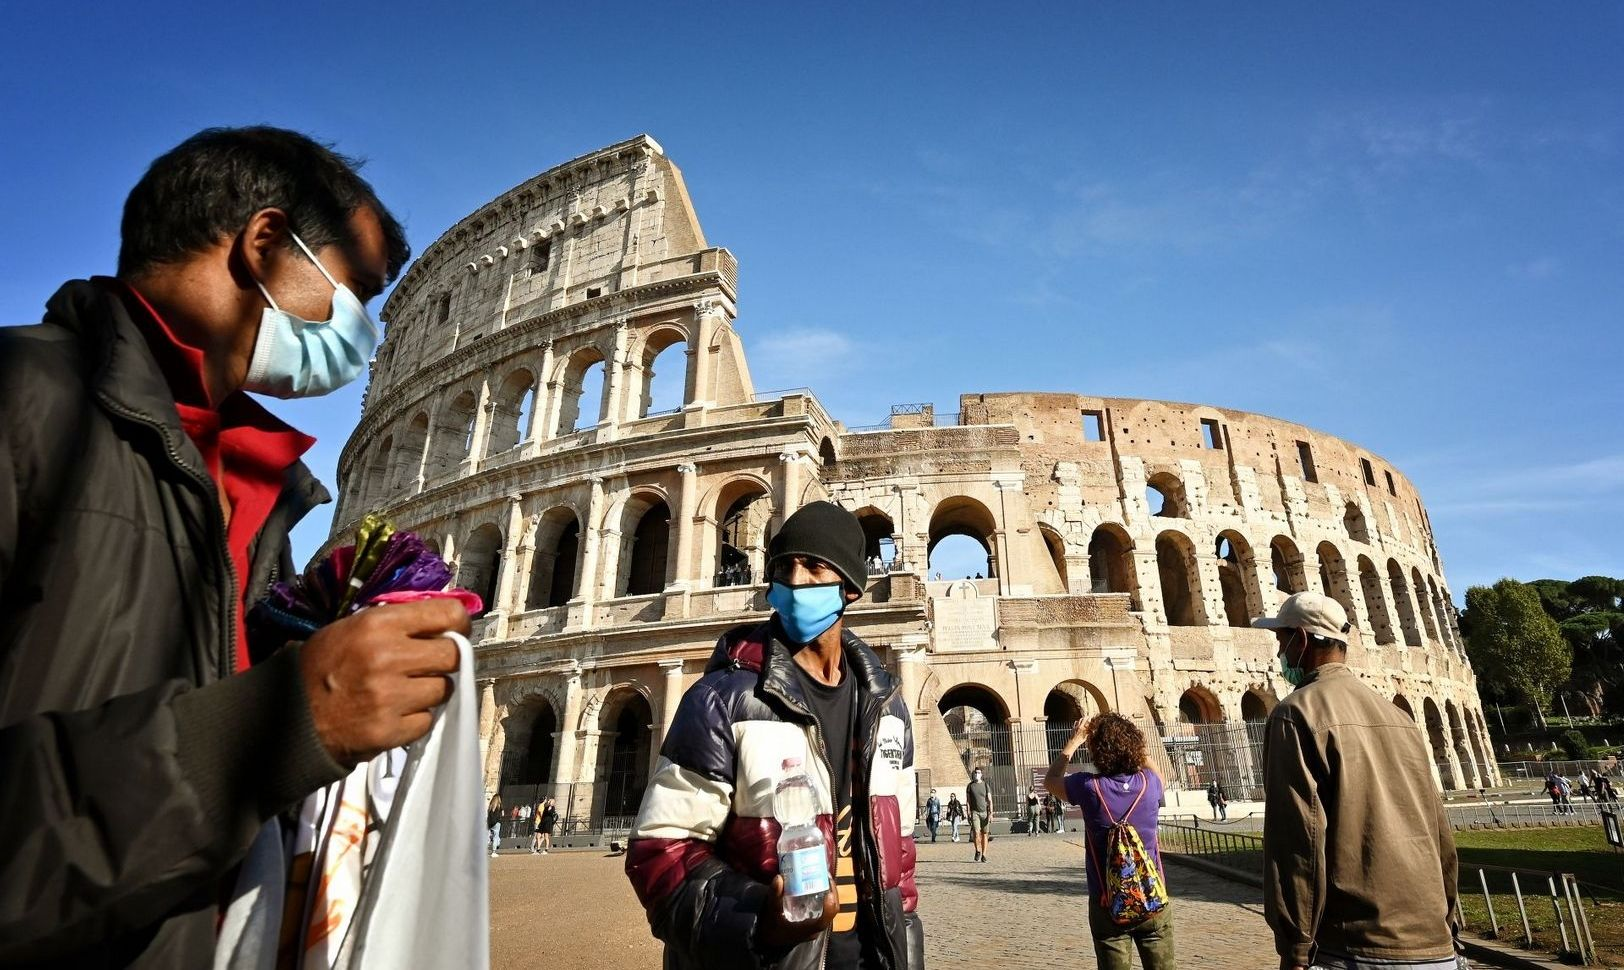 Italy: Over 5,000 infections daily. There will be new restrictions